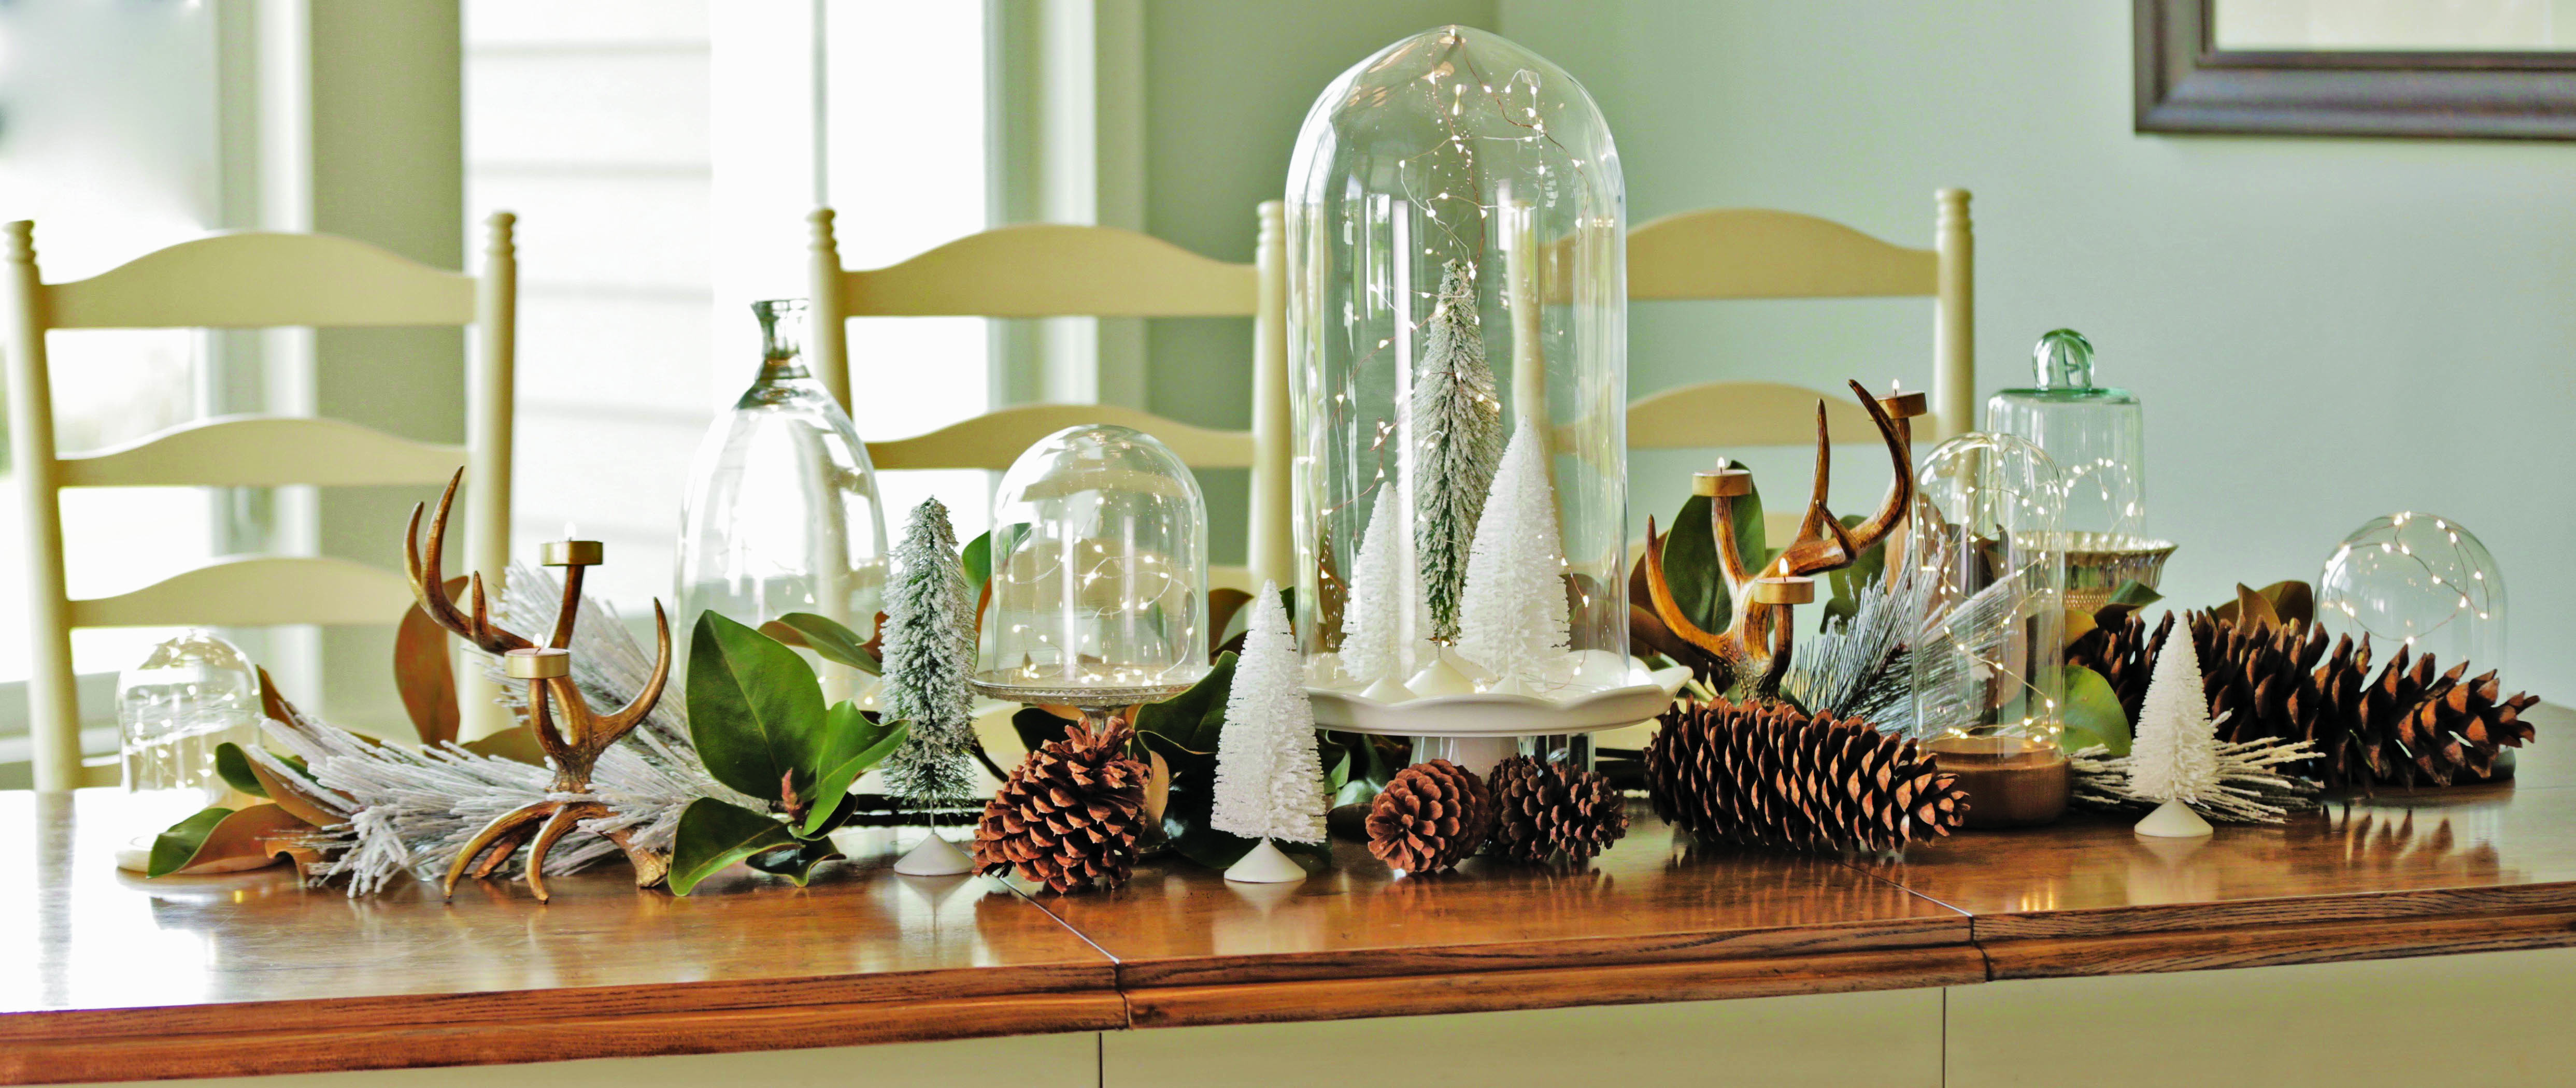 New trends in tabletop designs bring even more cheer to